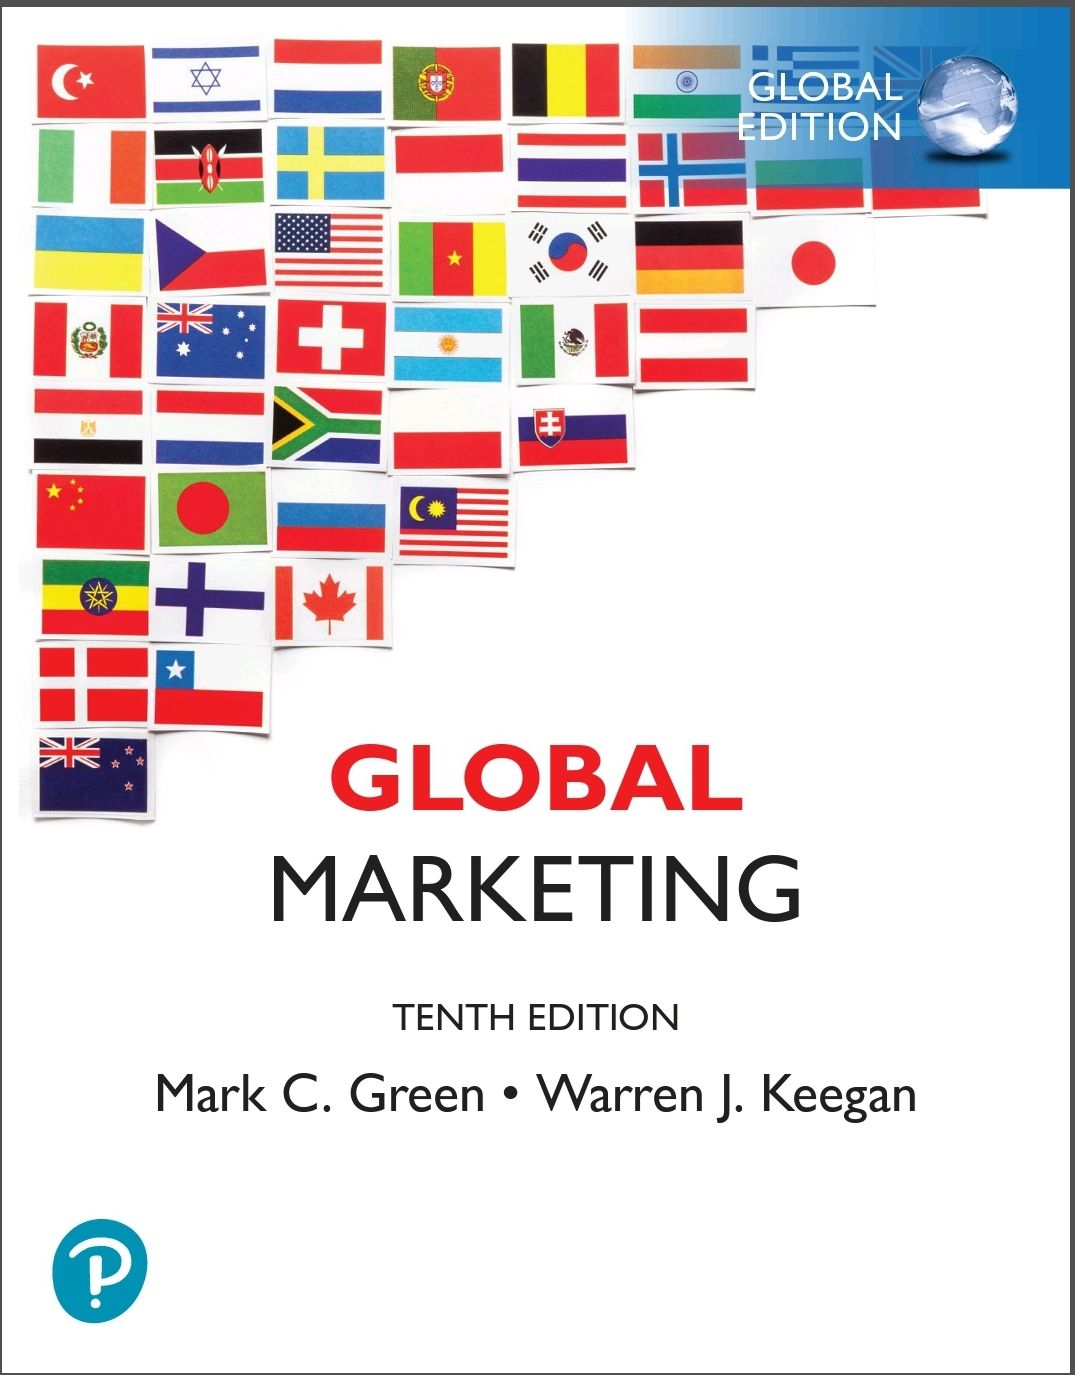 Pin On Global Marketing 10th Globaledition